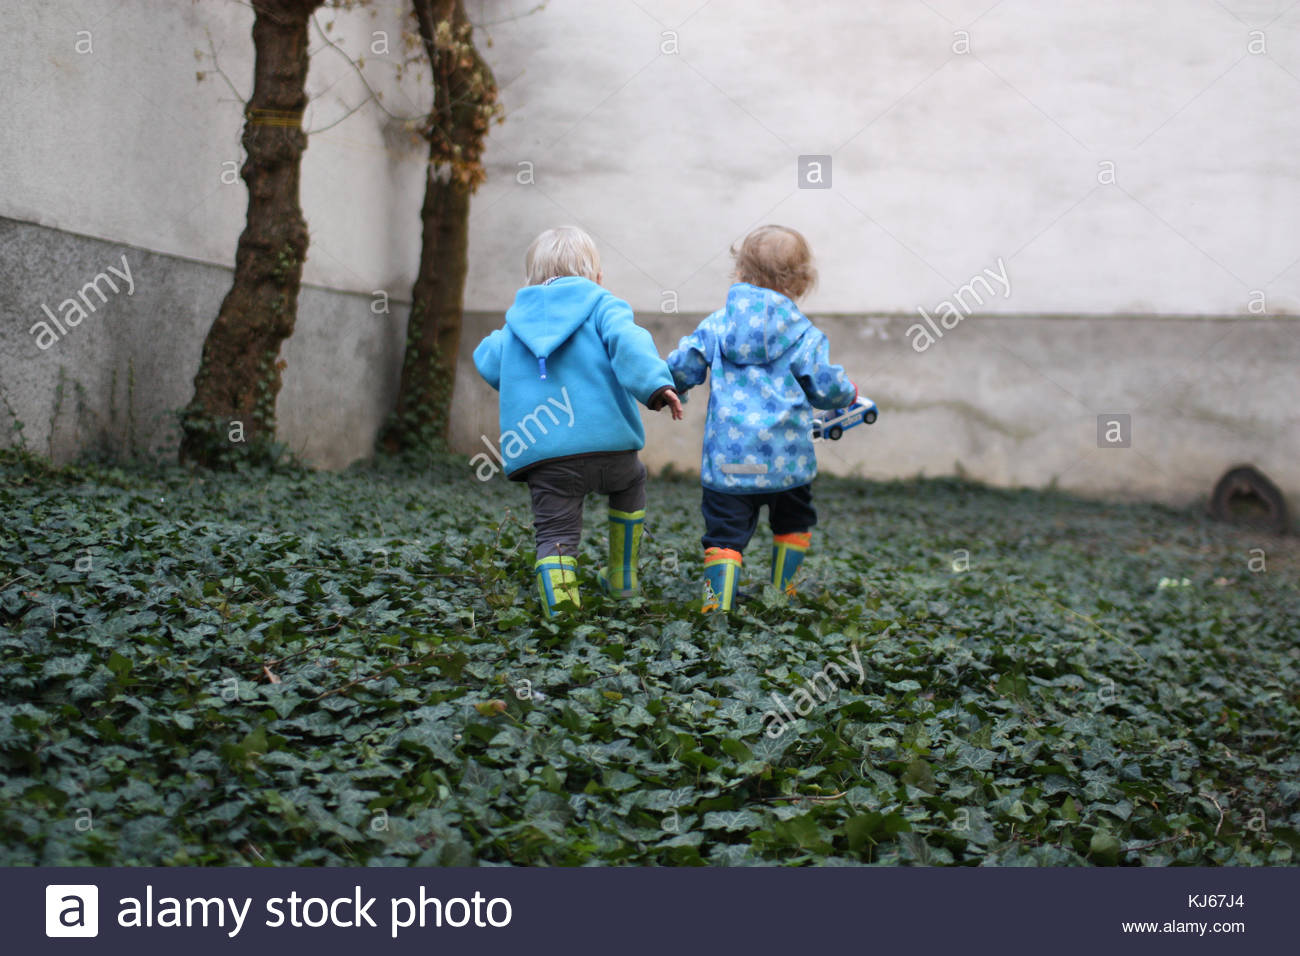 Deux enfants se tenant la main Photo Stock